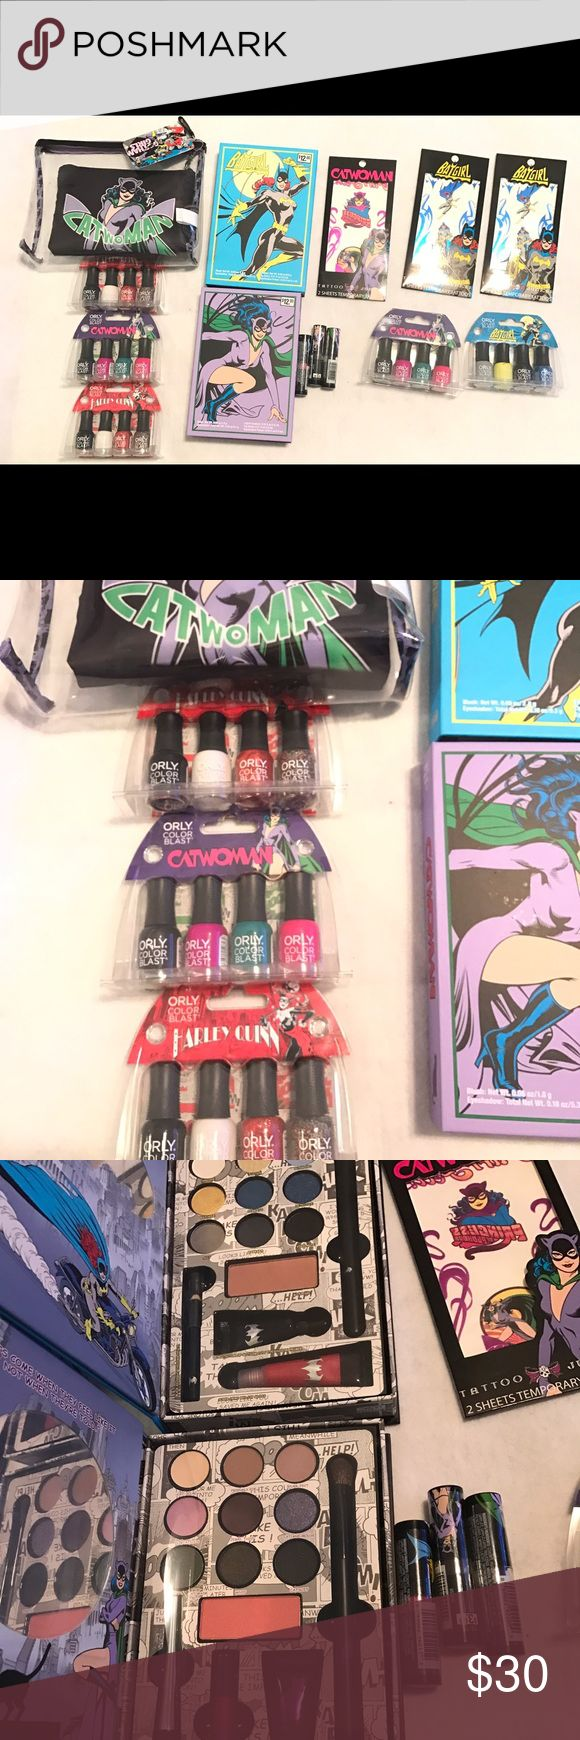 DC Super Hero makeup and polish set All brand new Cat women, Bat girl makeup sets and bags. Eye shadow, blush, lip gloss palette, 5 orly 4 piece nail polish set, cat women makeup bag that's includes two, bat girl lipstick and 3 Tatoo sets. Great as a Christmas gift or stocking stuffers. Makeup